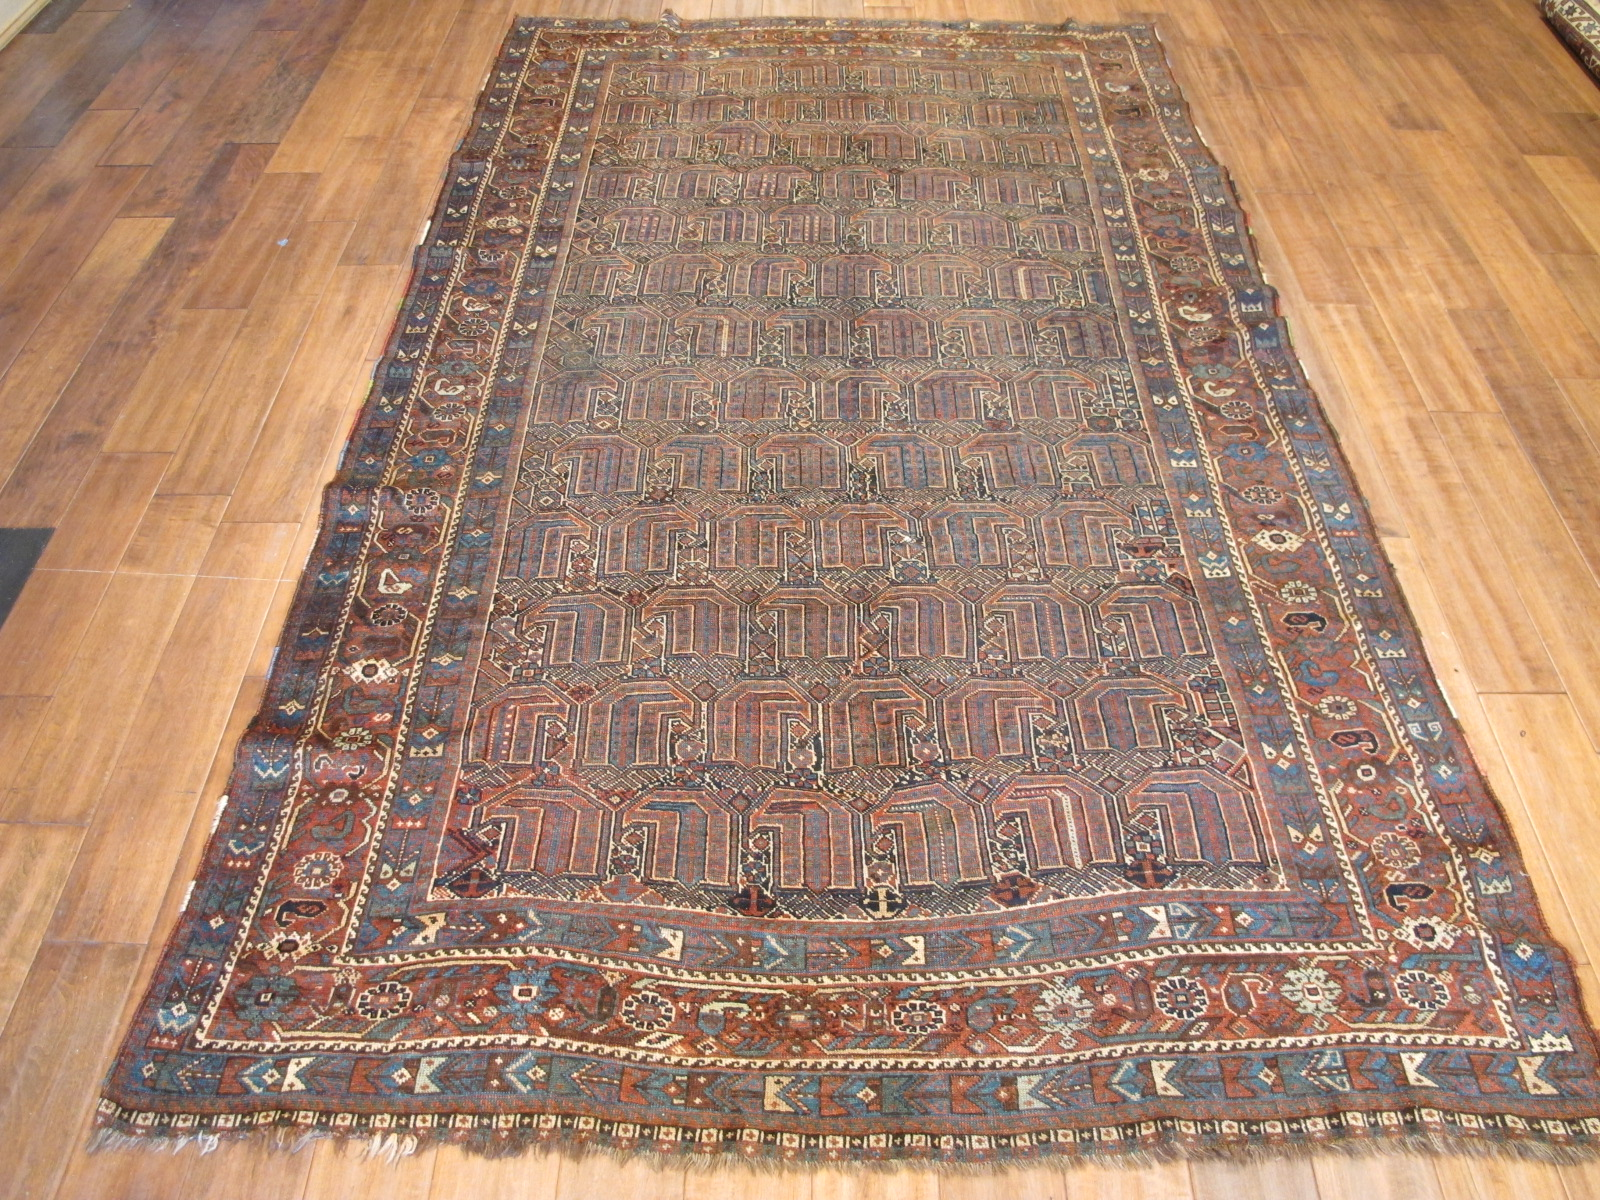 21114 antique persian kamseh carpet 5,2 x 9 (1)